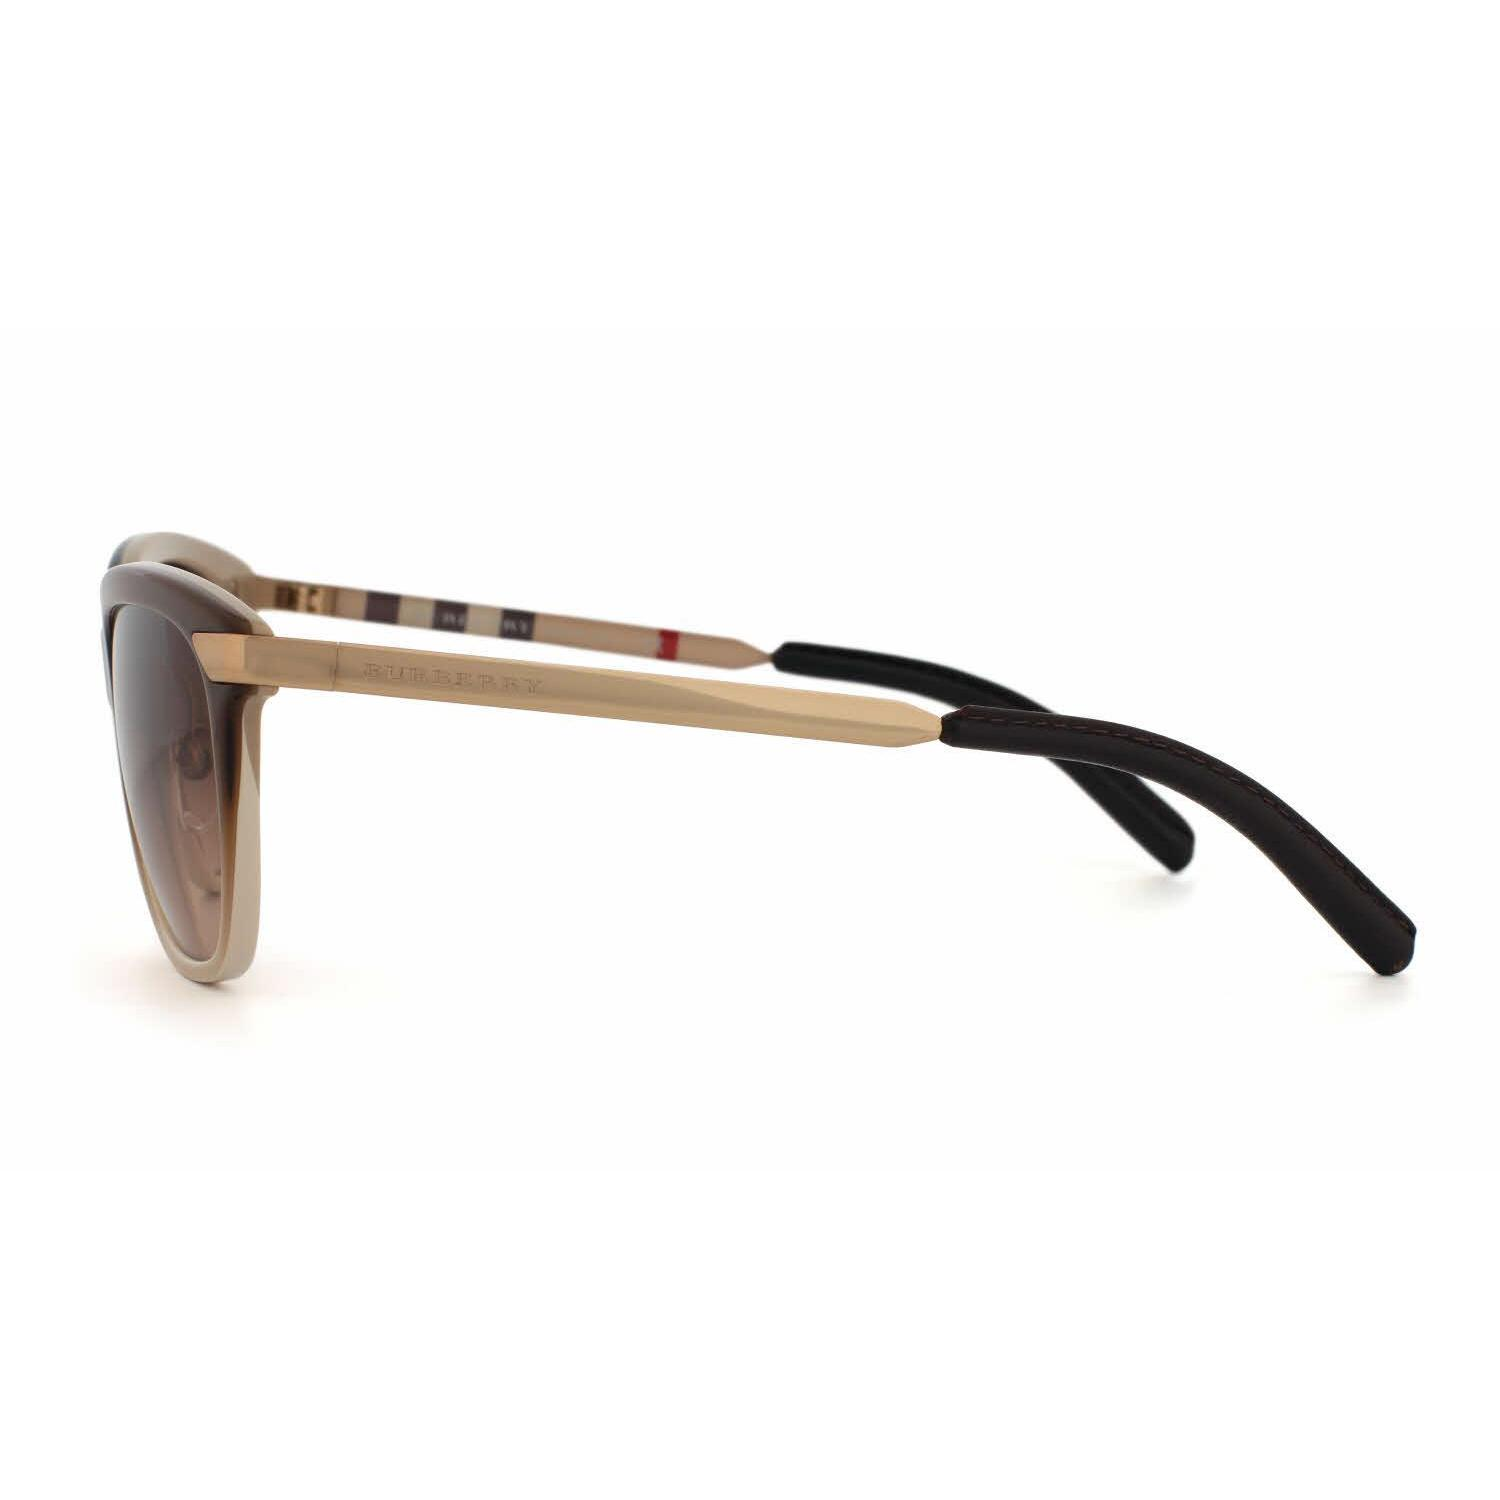 d394ef75143 Shop Burberry Women BE4169Q 342613 Light Brown Metal Square Sunglasses -  Free Shipping Today - Overstock - 13298333